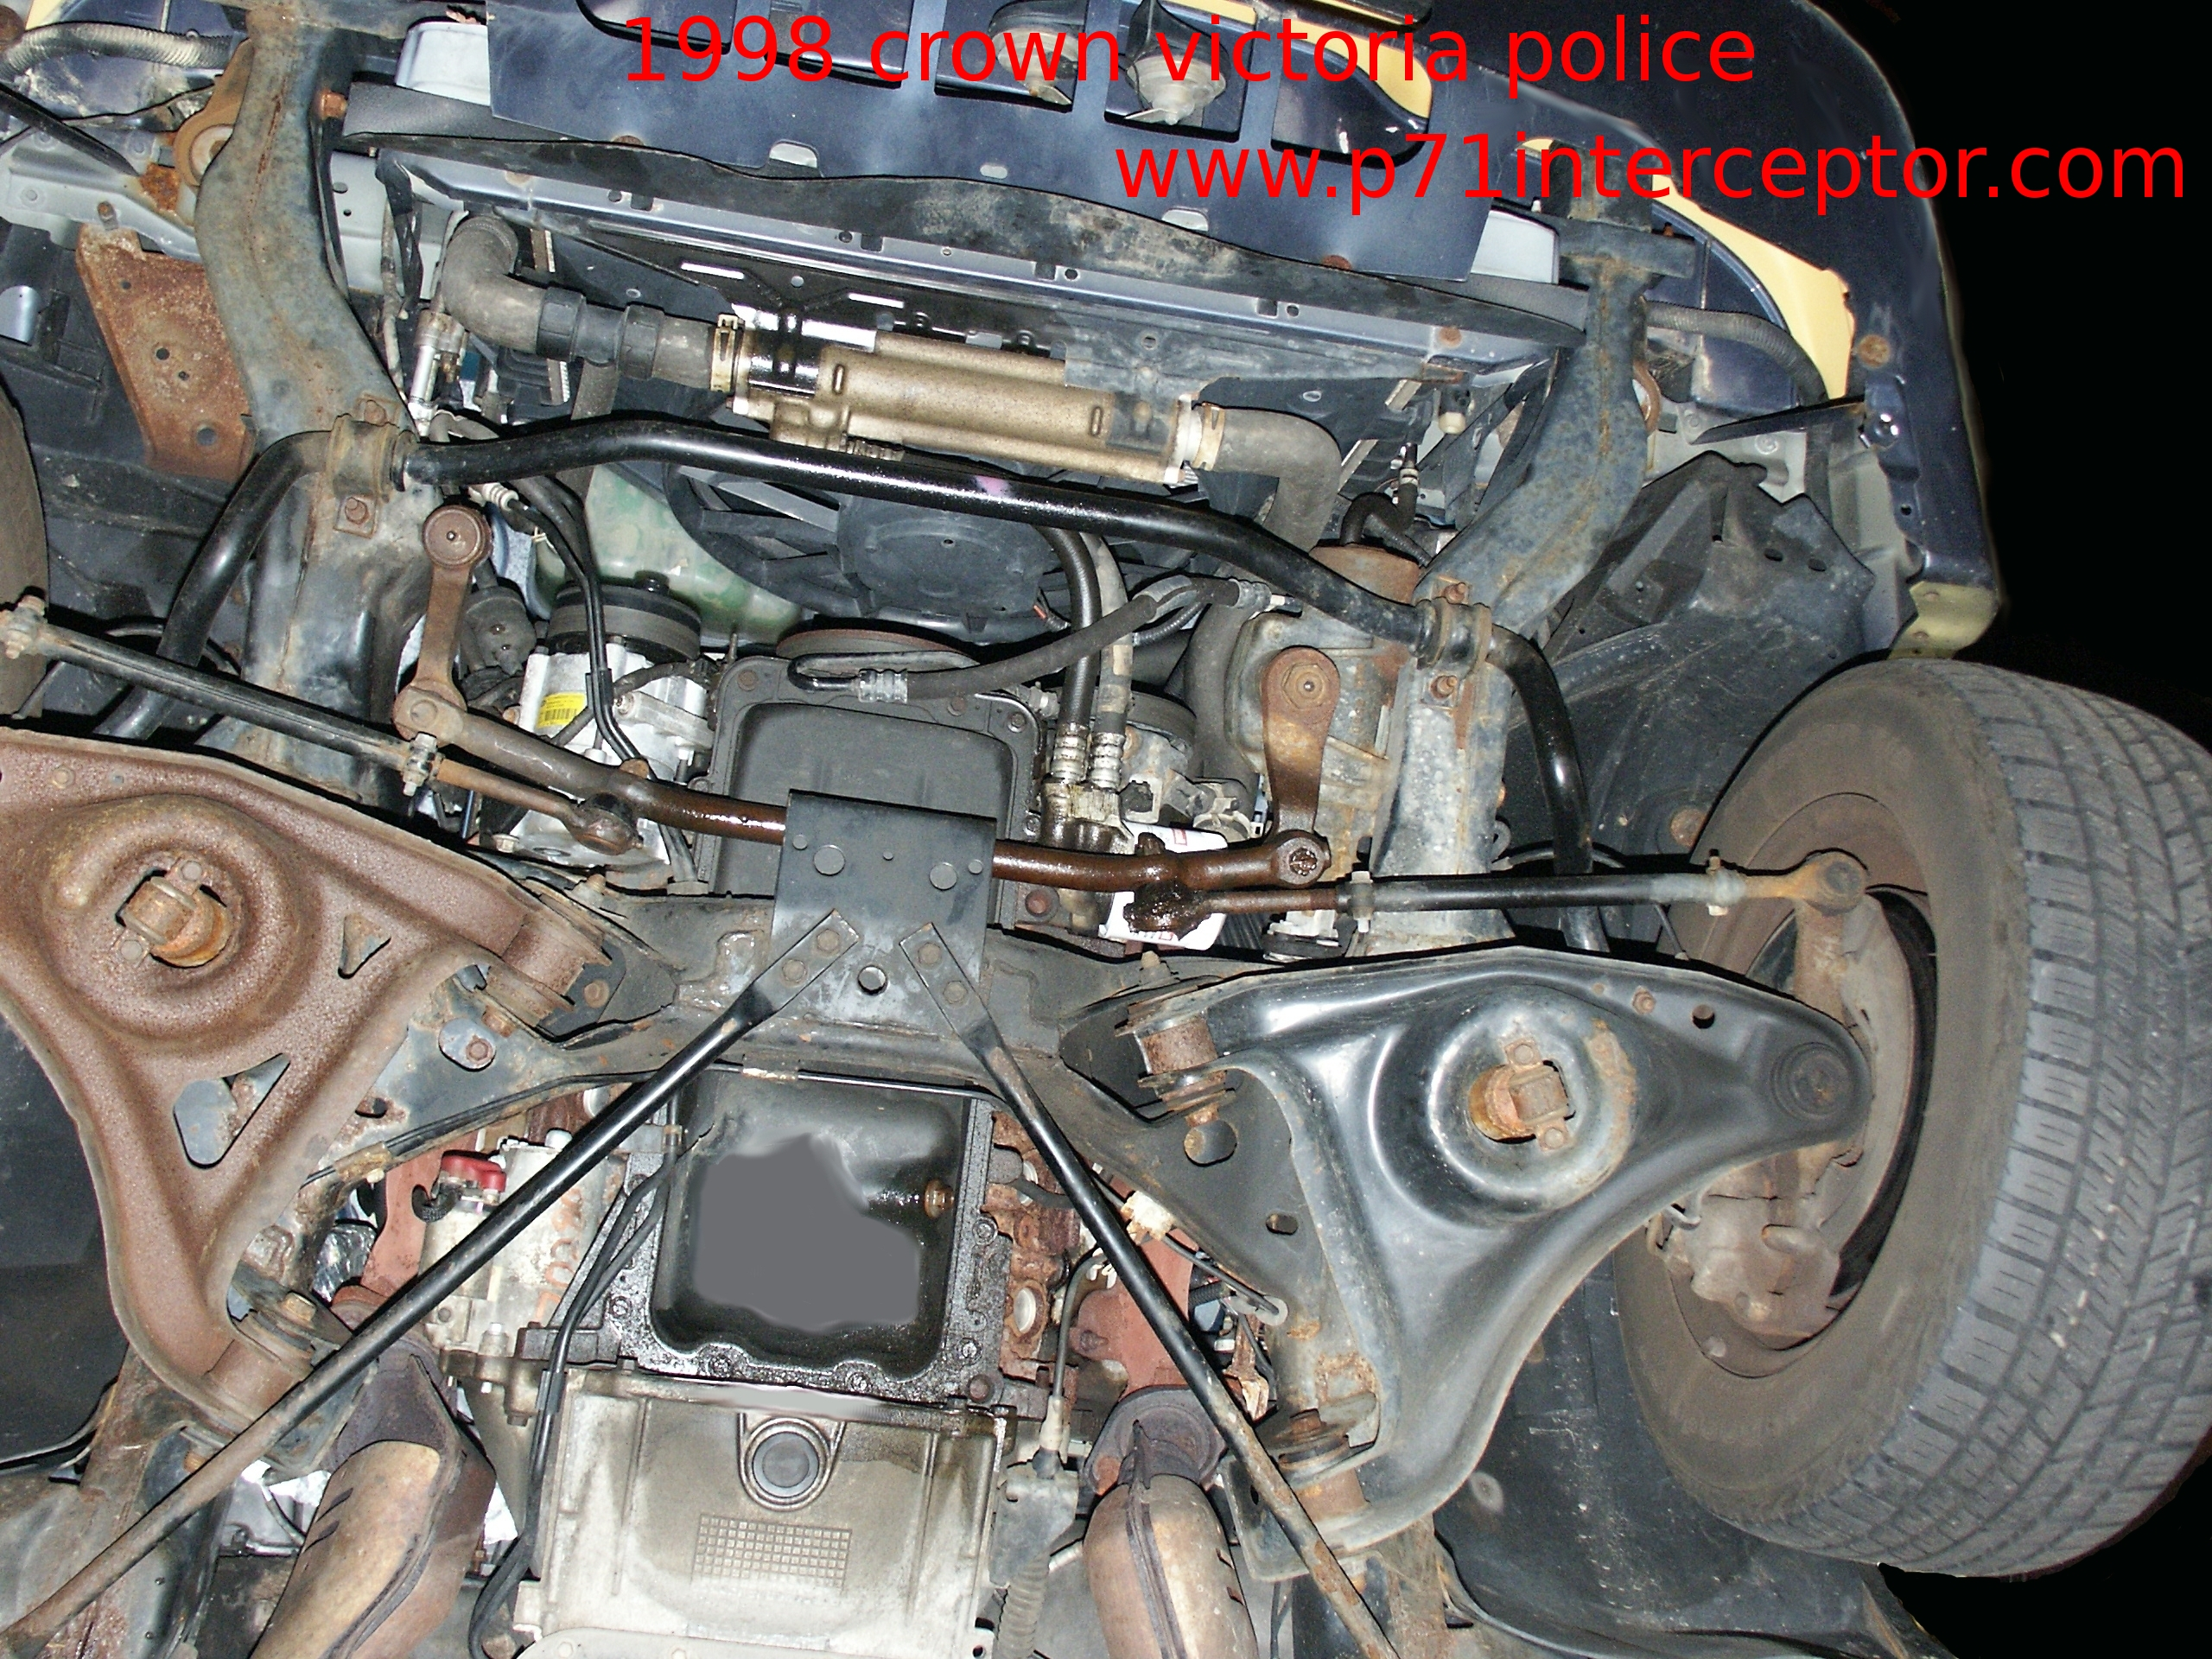 Index moreover 2000 Honda Cr V Engine besides Showthread in addition Fuse Box Pontiac Grand Prix Srs 1998 Heater Core likewise Wiring Harness For 2000 Honda Rancher. on honda s2000 fuel filter location